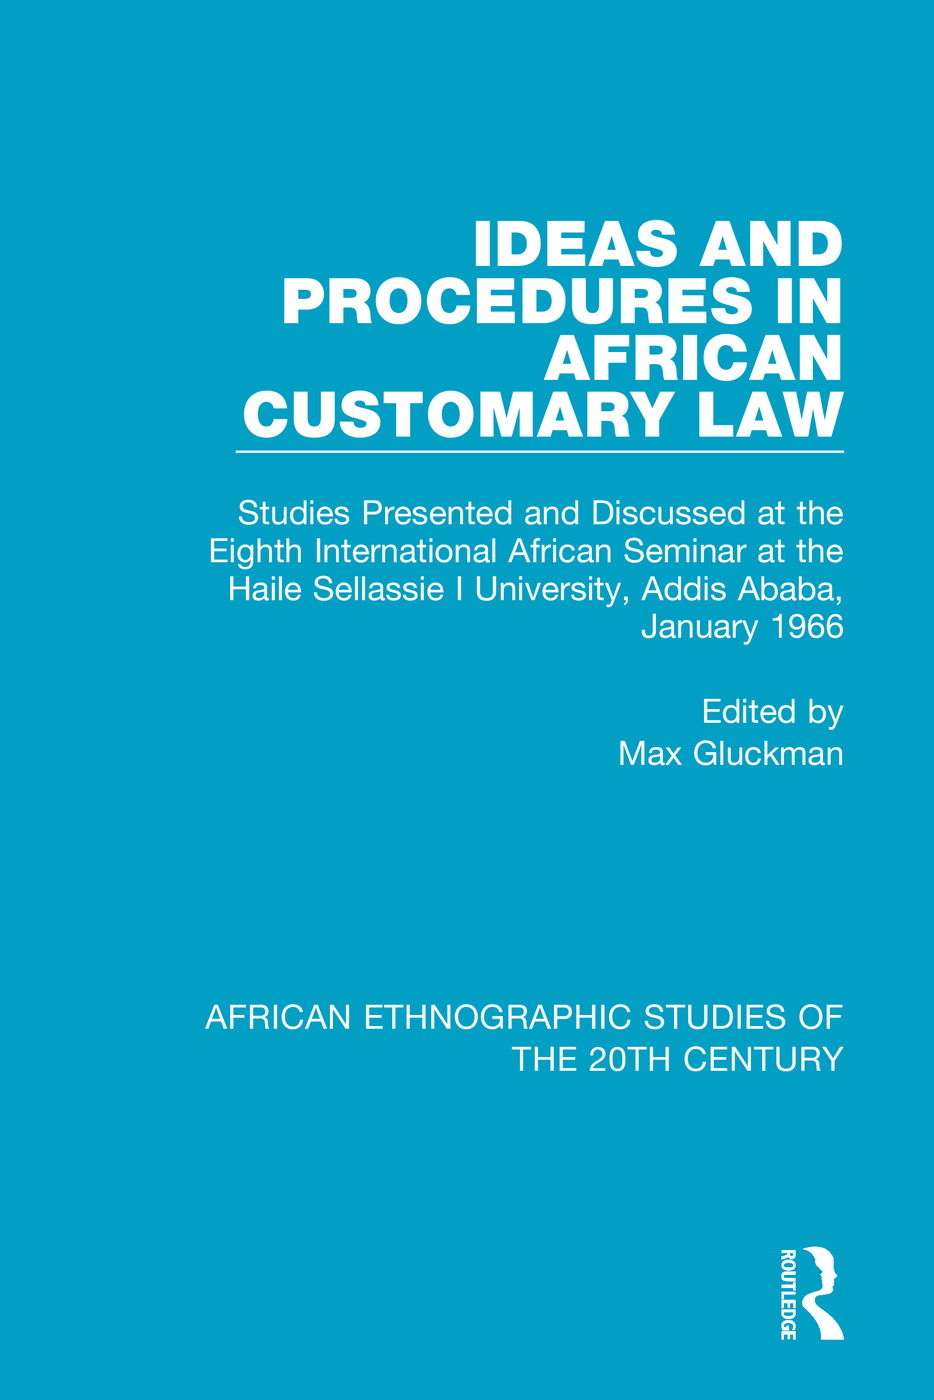 Ideas and Procedures in African Customary Law: Studies Presented and Discussed at the Eighth International African Seminar at the Haile Sellassie I University, Addis Ababa, January 1966, 1st Edition (Paperback) book cover